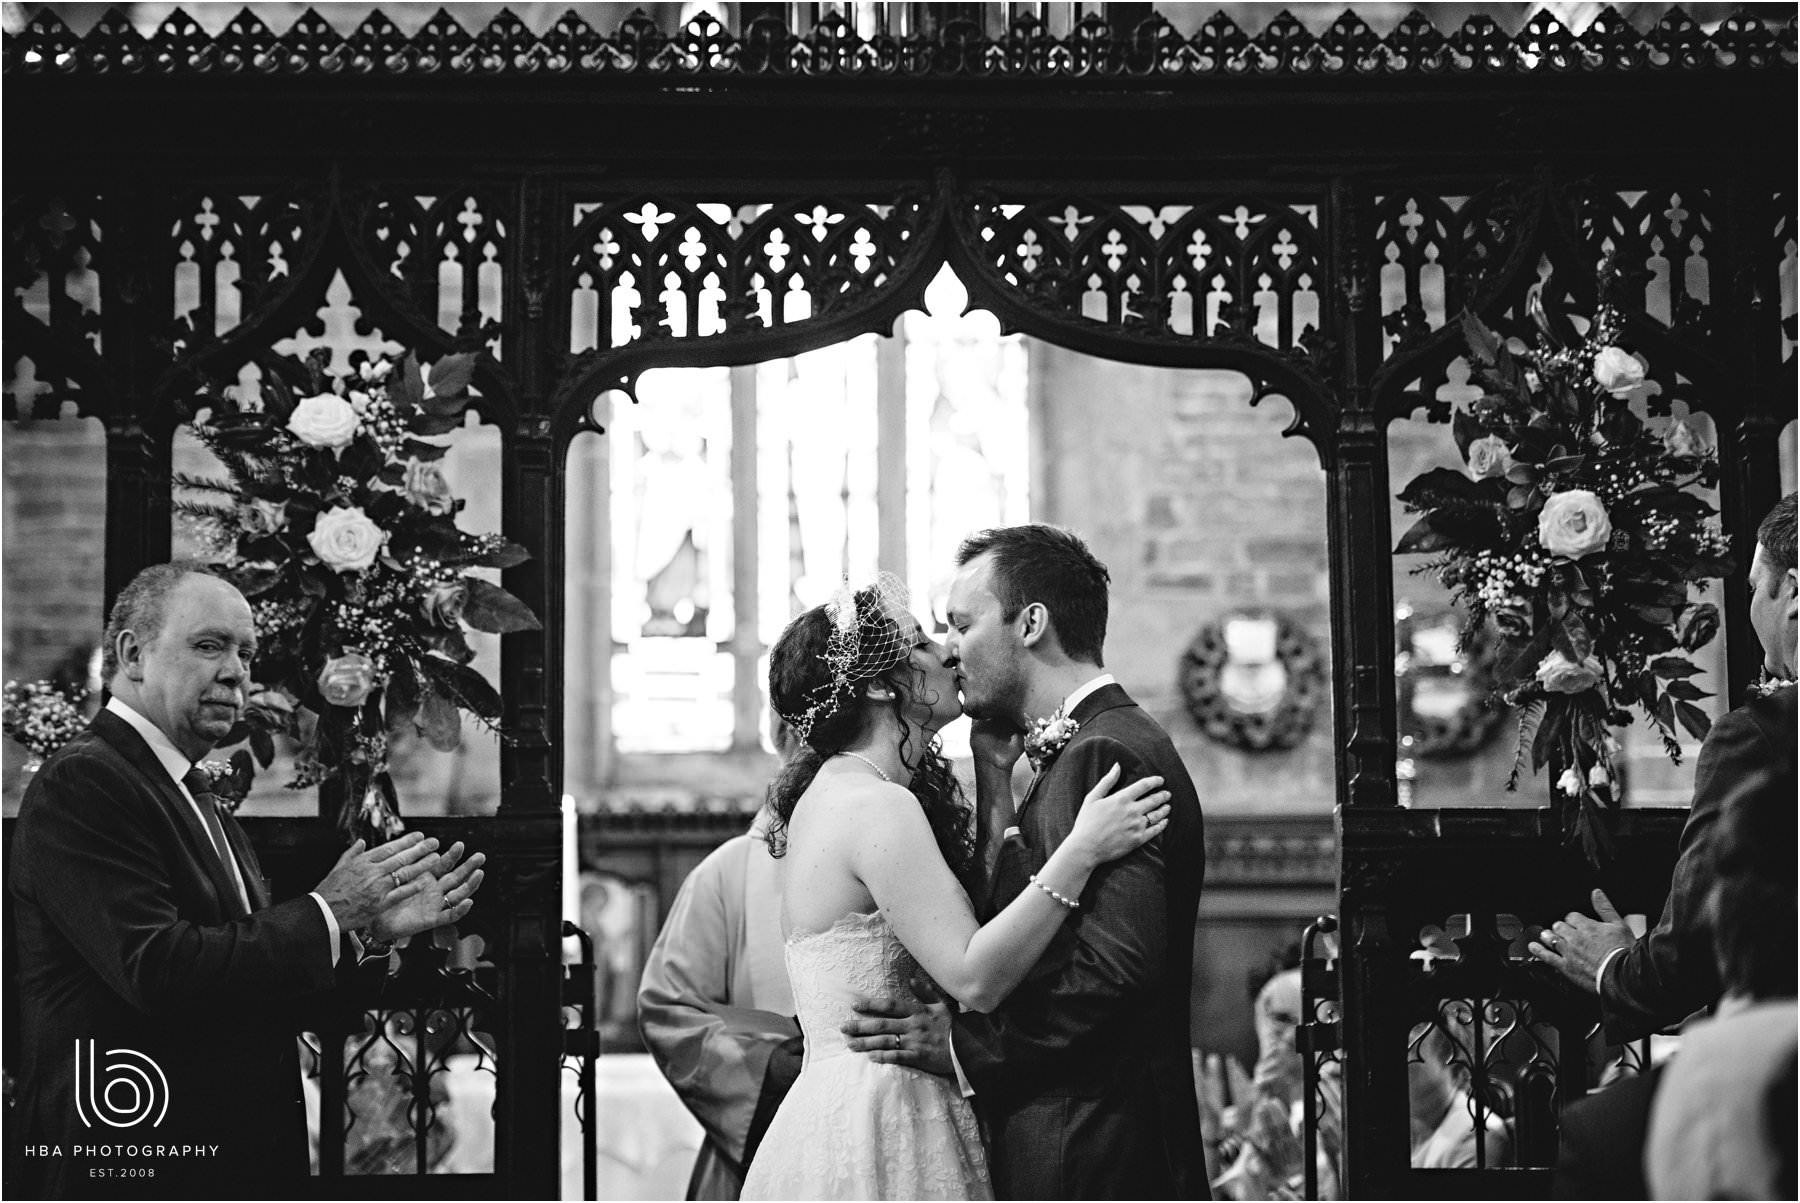 the bride and groom's first kiss